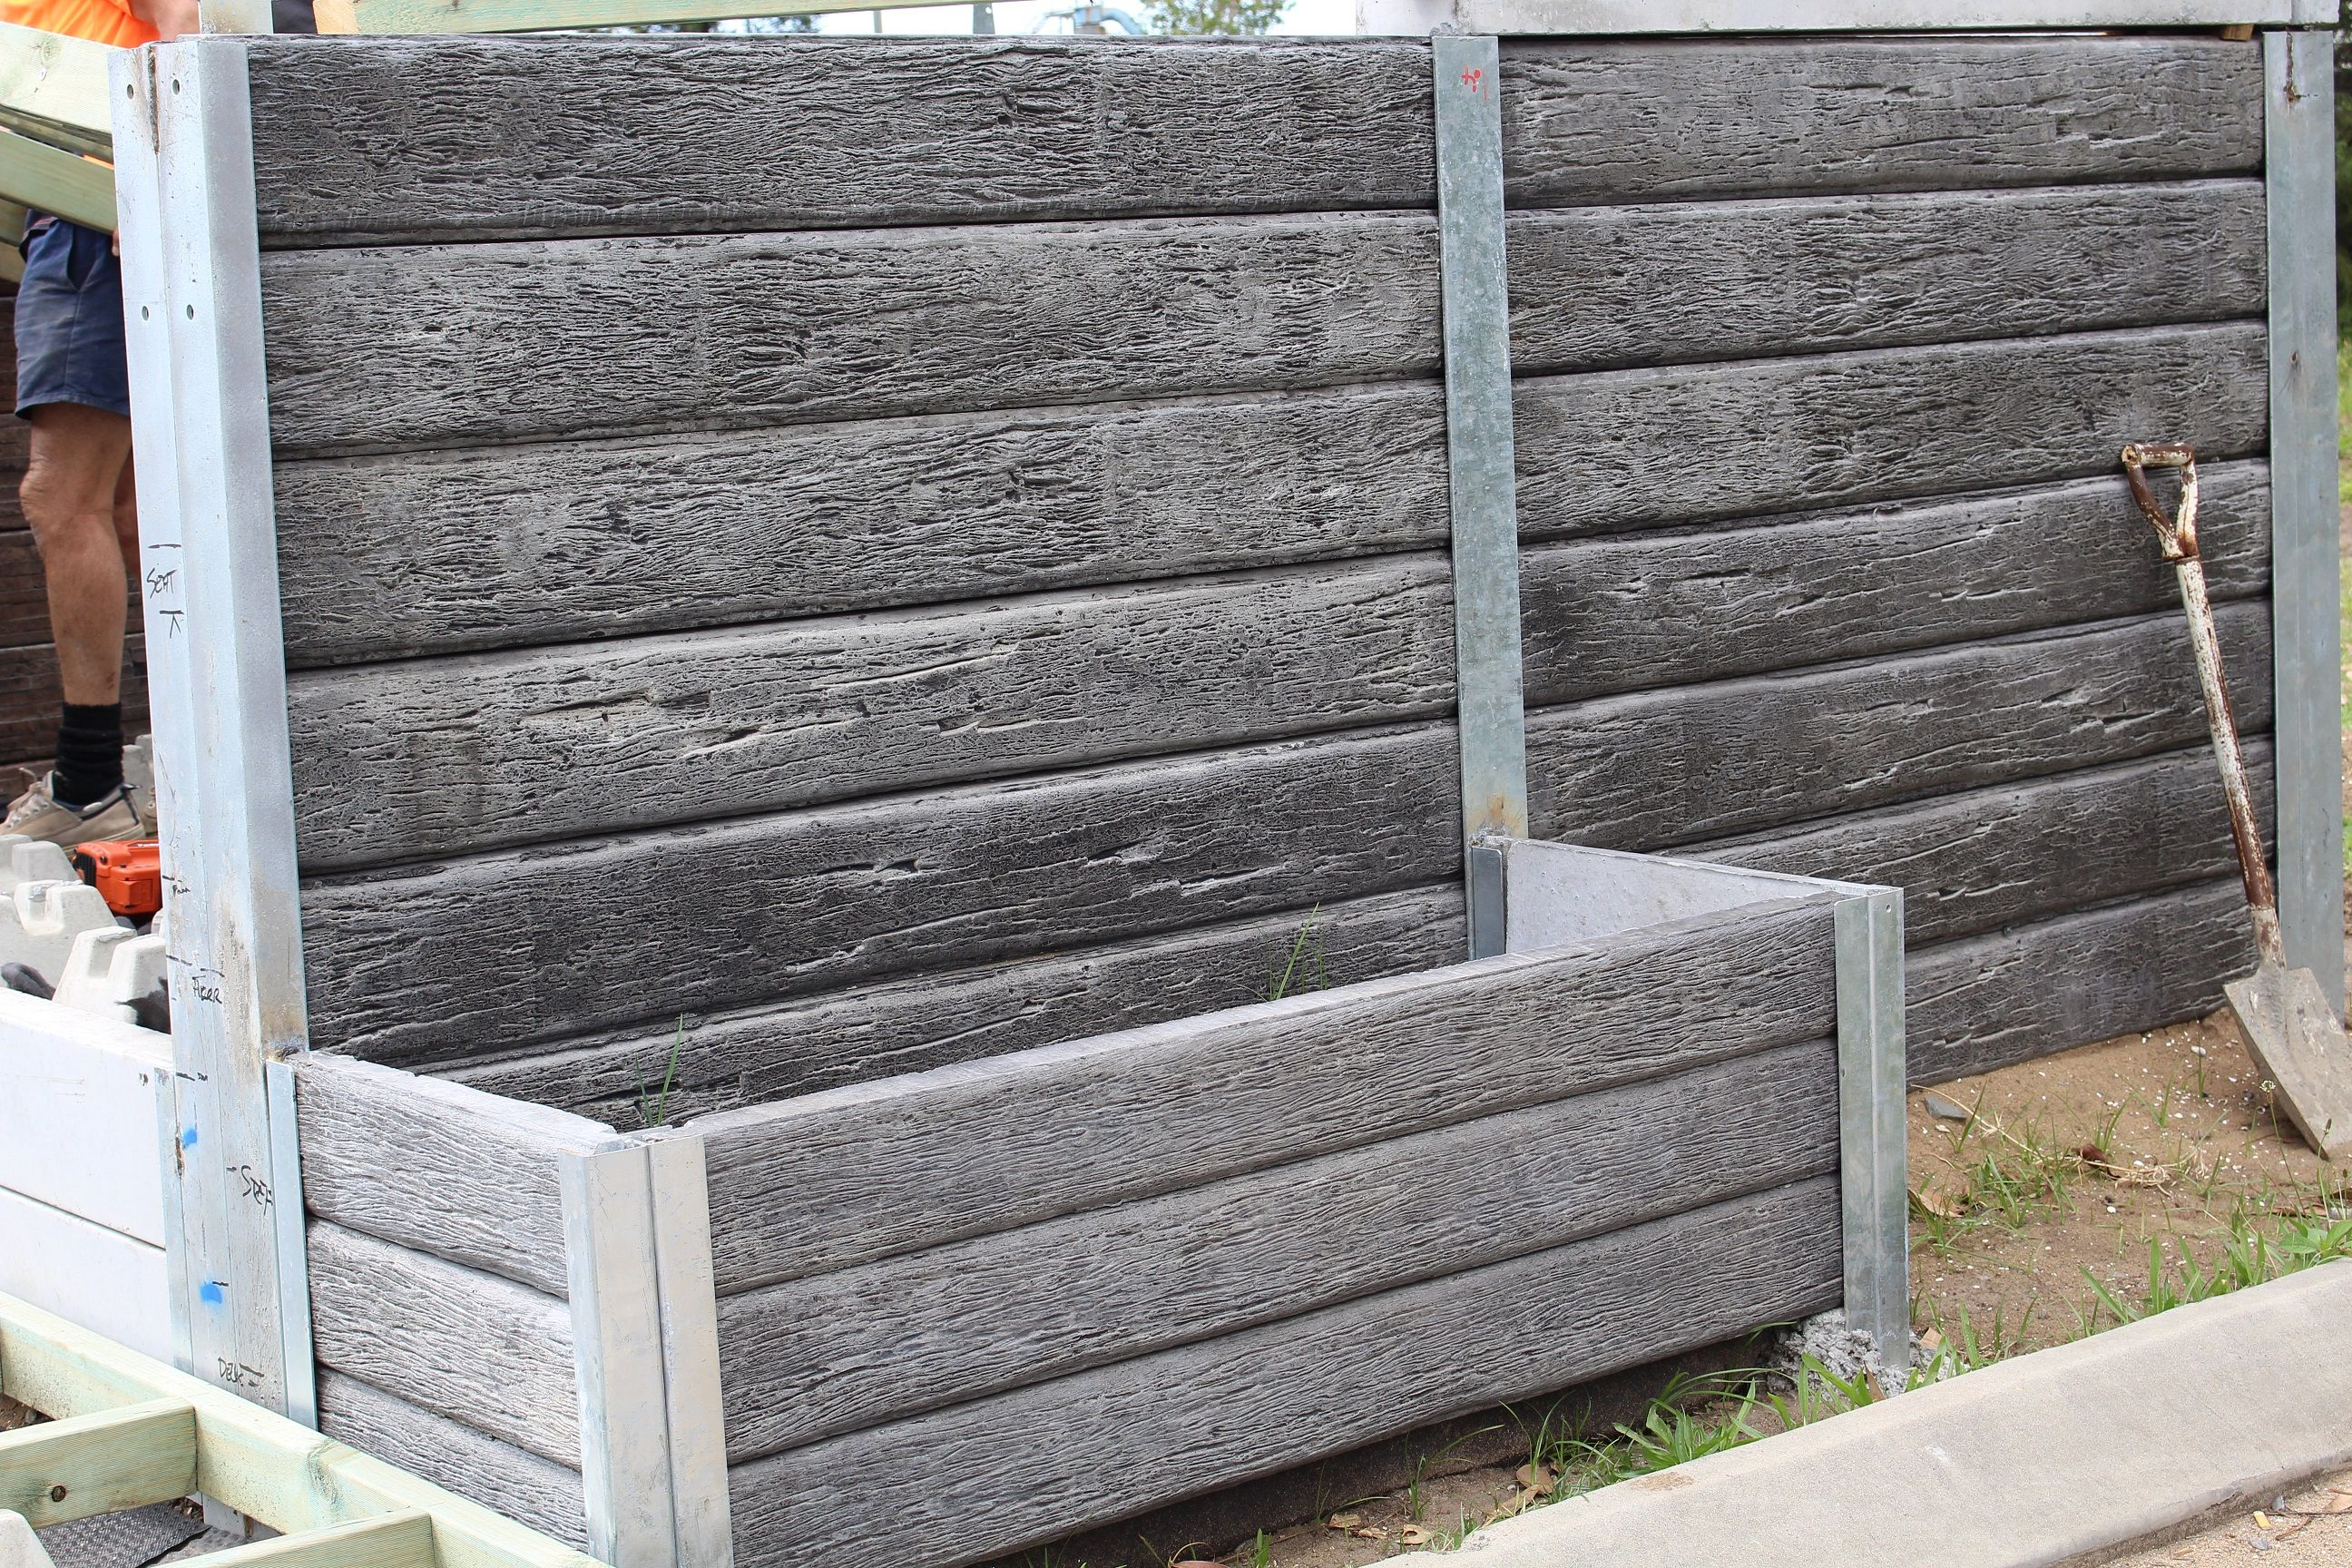 Pioneer Gumtree Concrete Sleepers Used As A Planter Box For